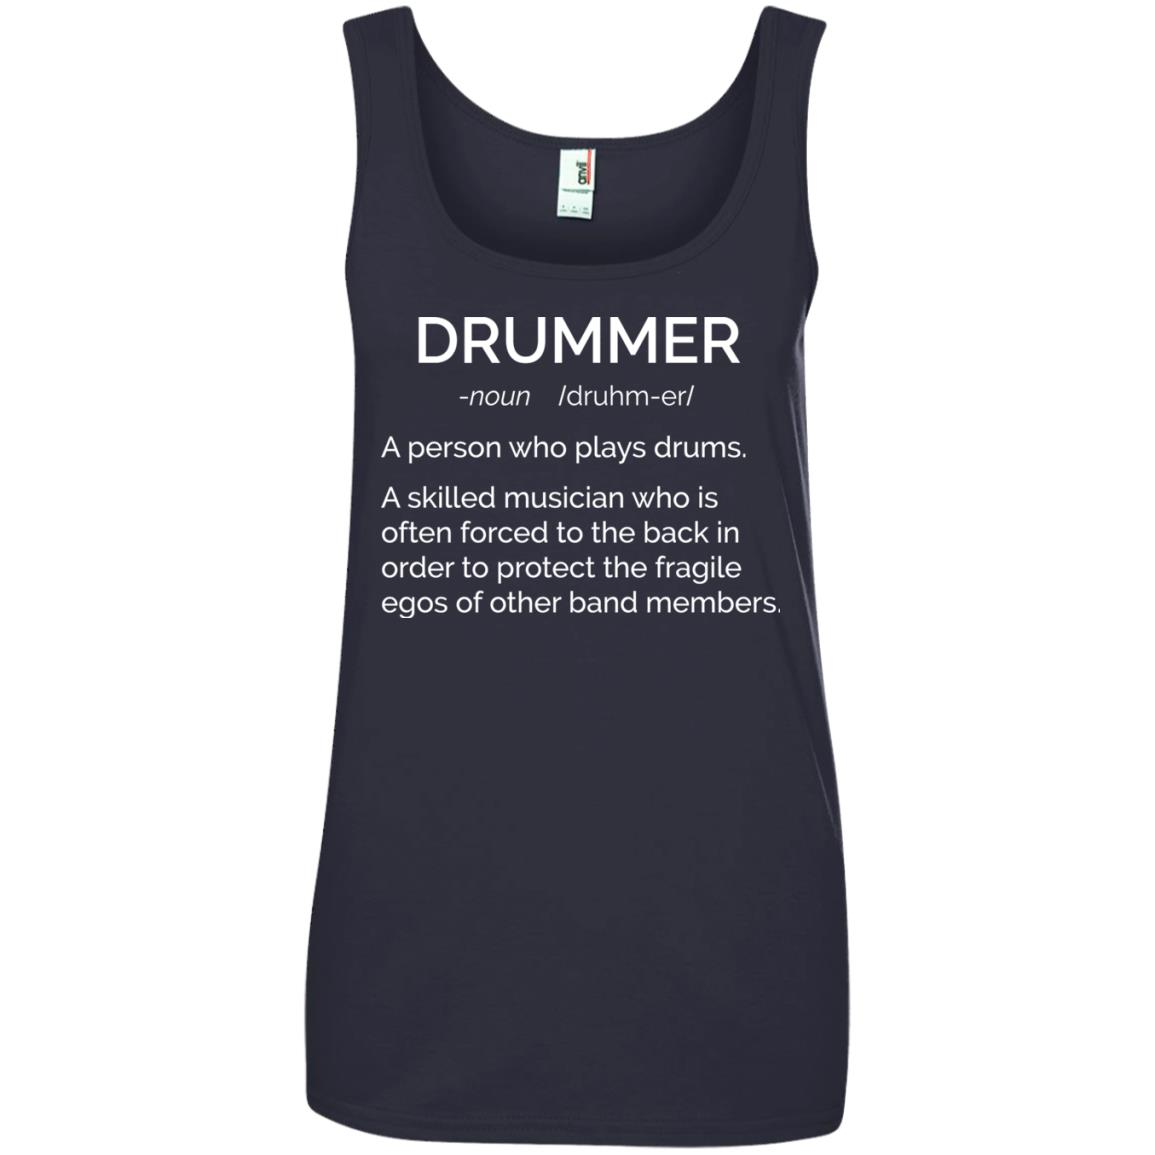 Drummer Definition Shirt: Skilled Musician Often Forced To The Back